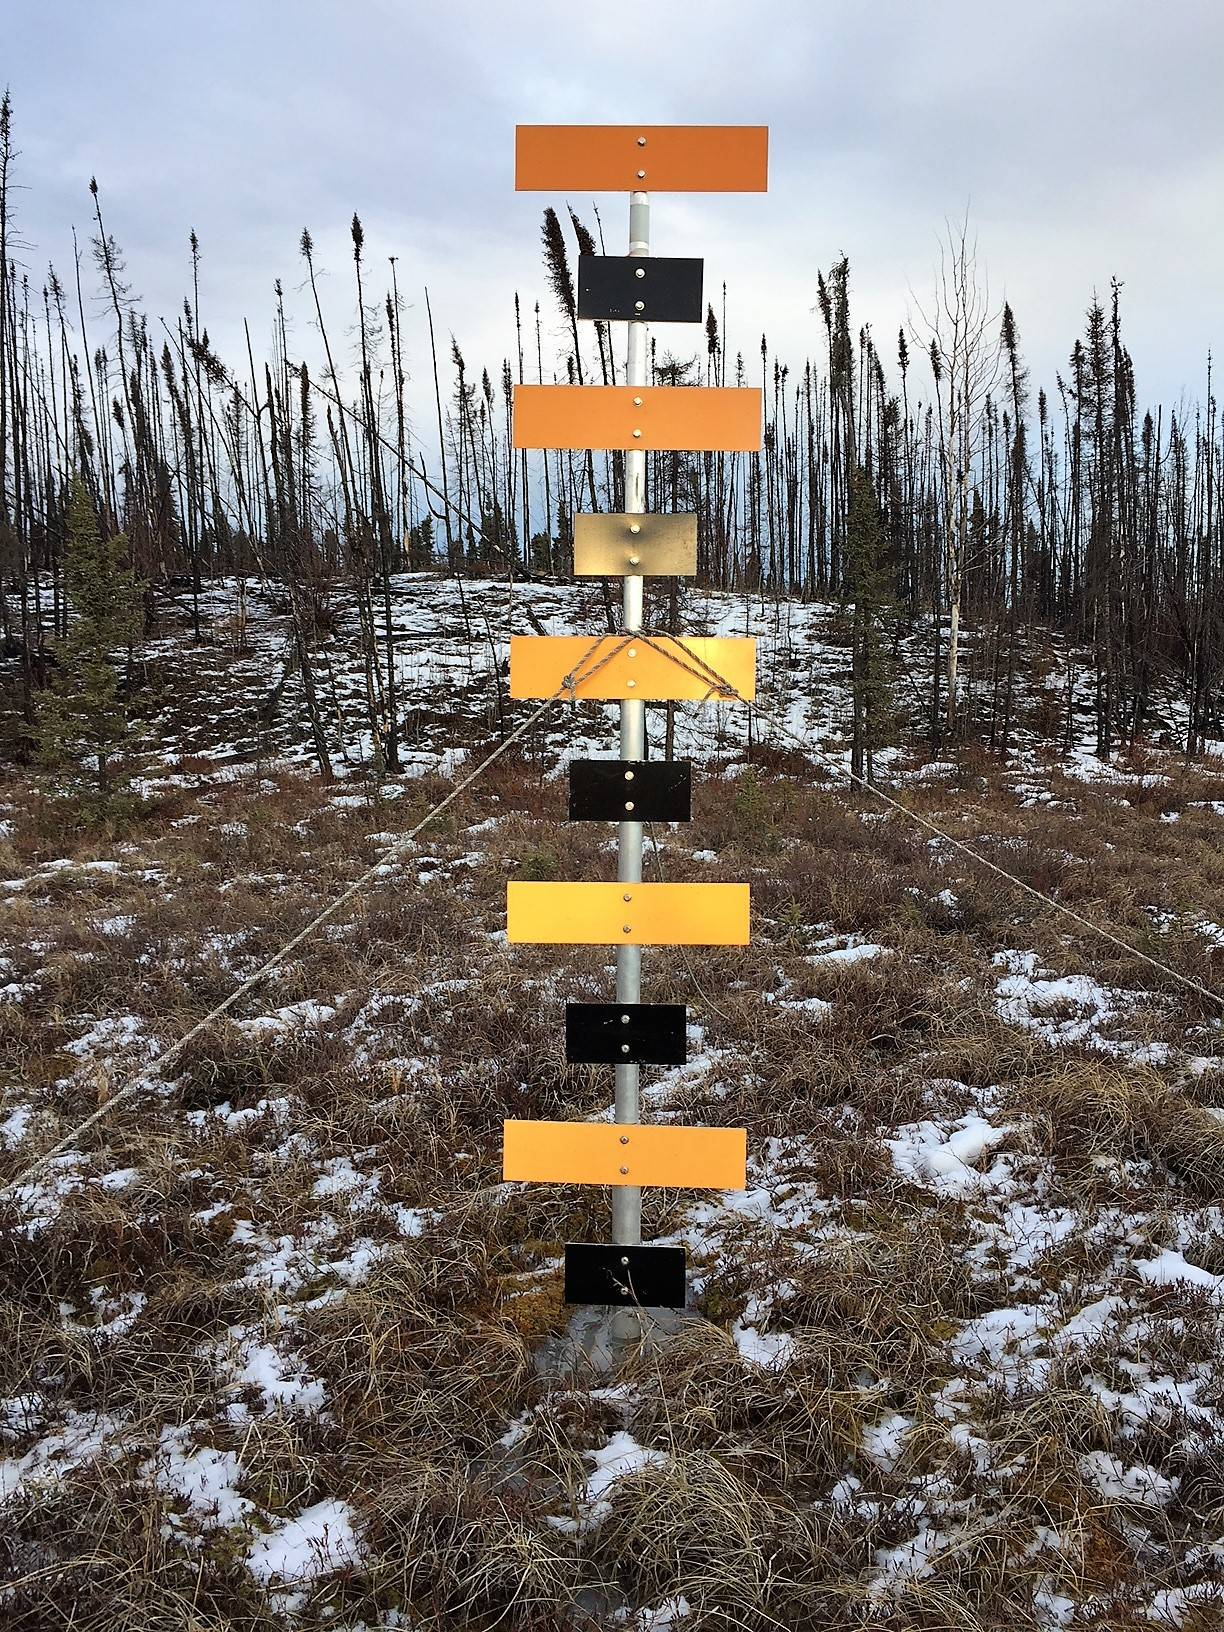 One of the aerial markers used to monitor snow depth on the Kenai National Wildlife Refuge. (Photo courtesy Kenai National Wildlife Refuge)